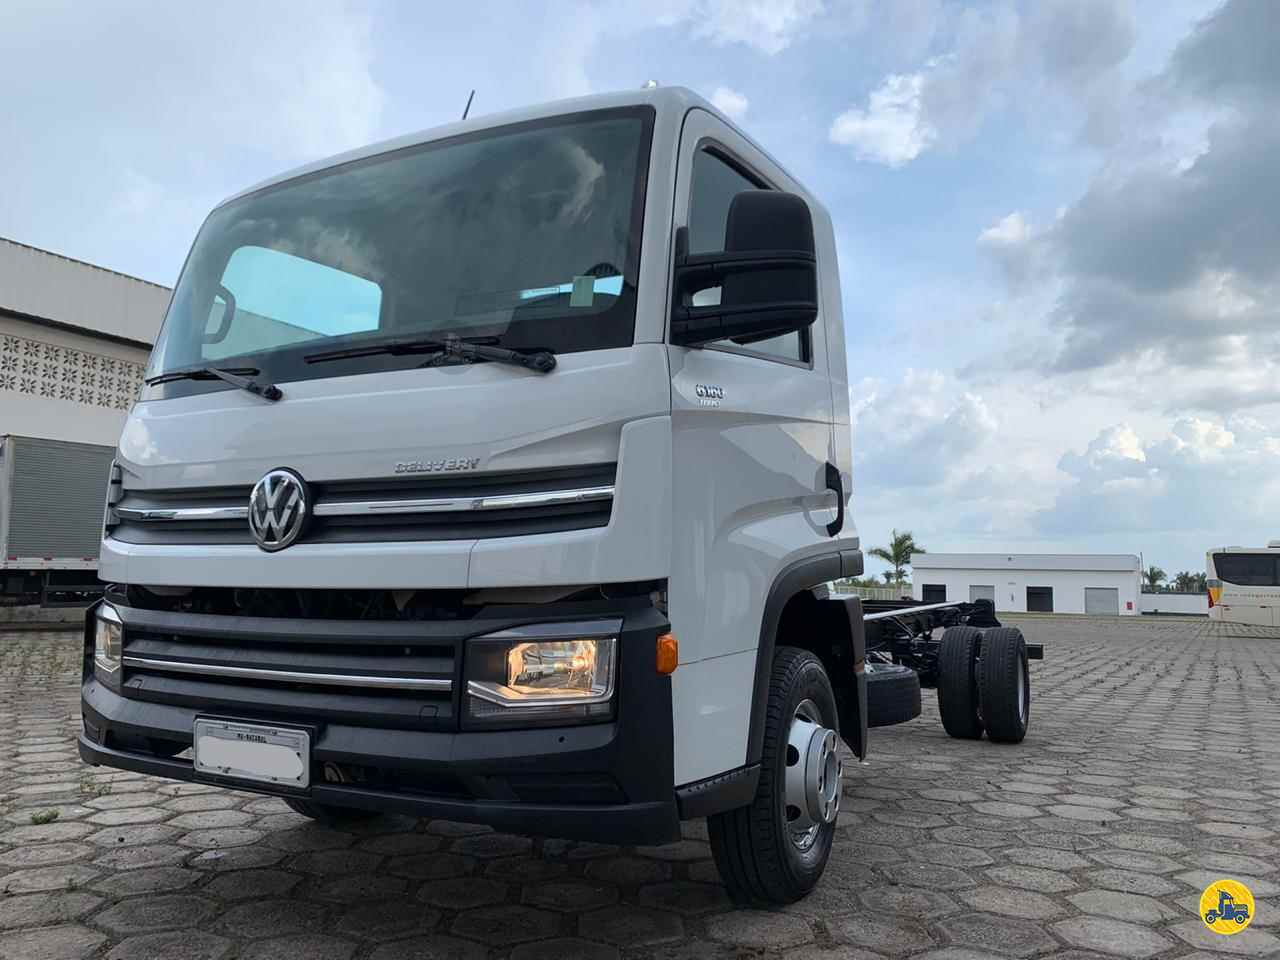 CAMINHAO VOLKSWAGEN VW 6160 Chassis Toco 4x2 Monaco Diesel - VW ANANINDEUA PARÁ PA